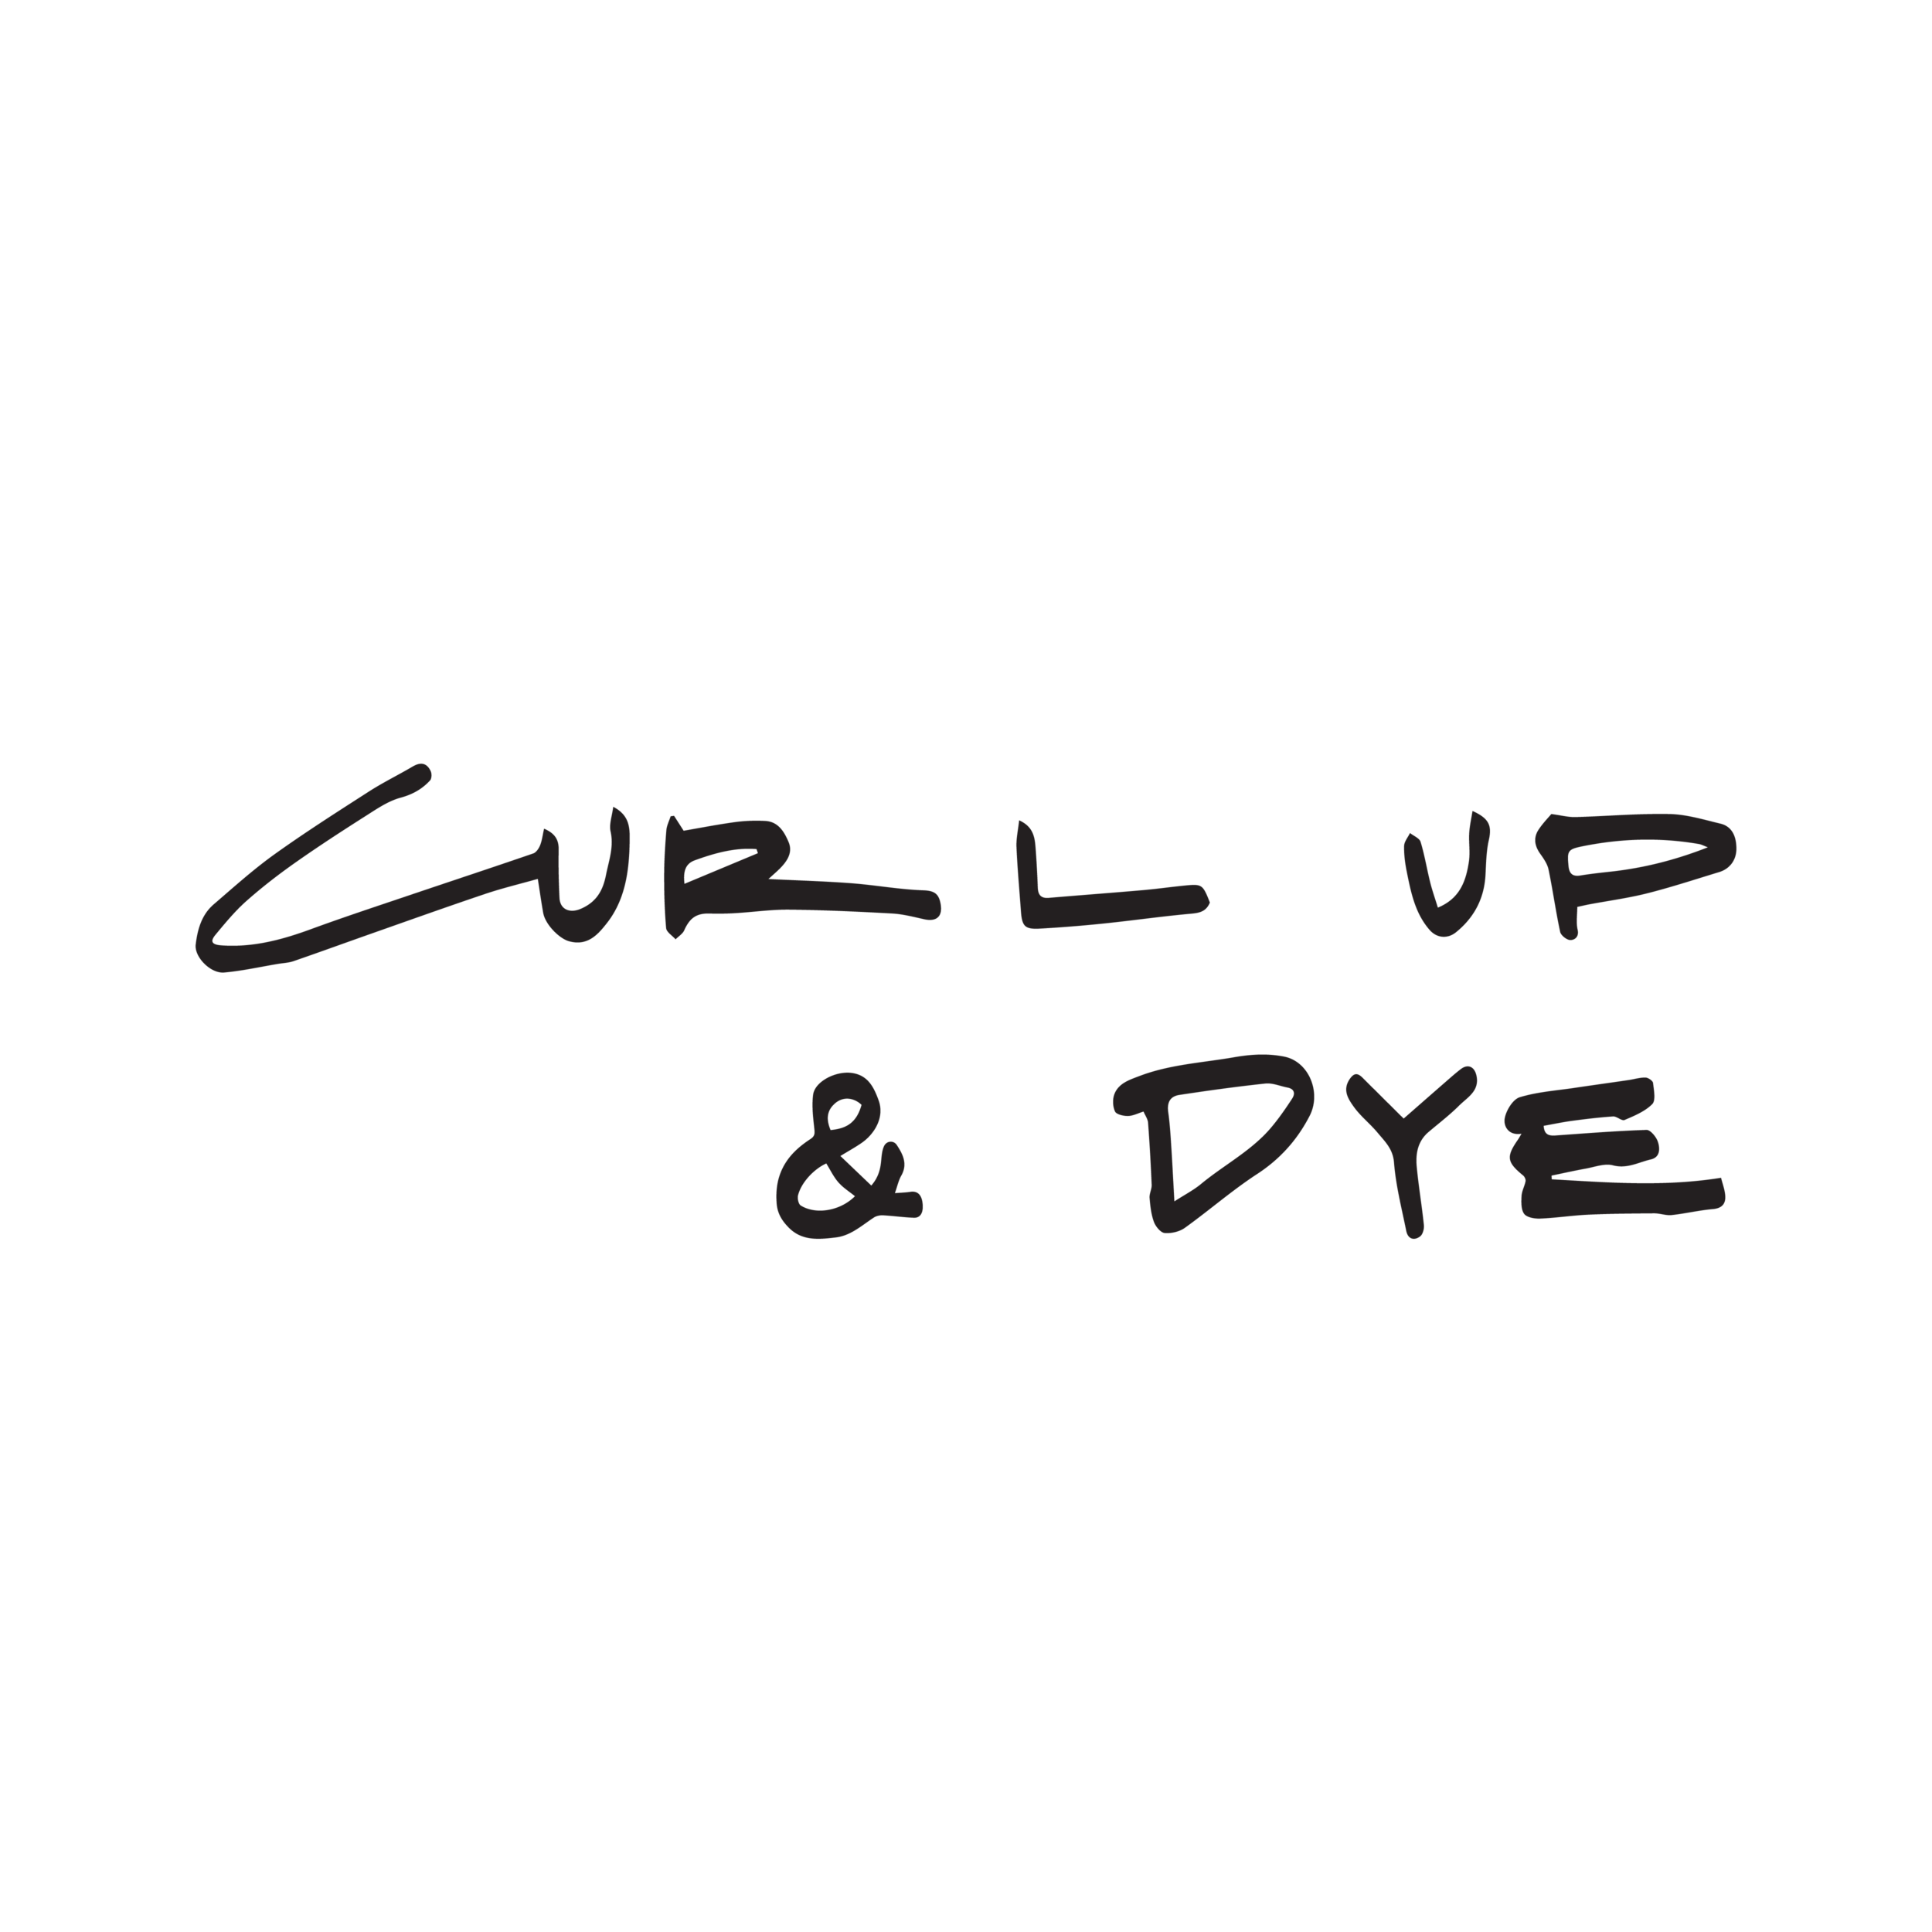 curl up and dye_logo_b+w2.png